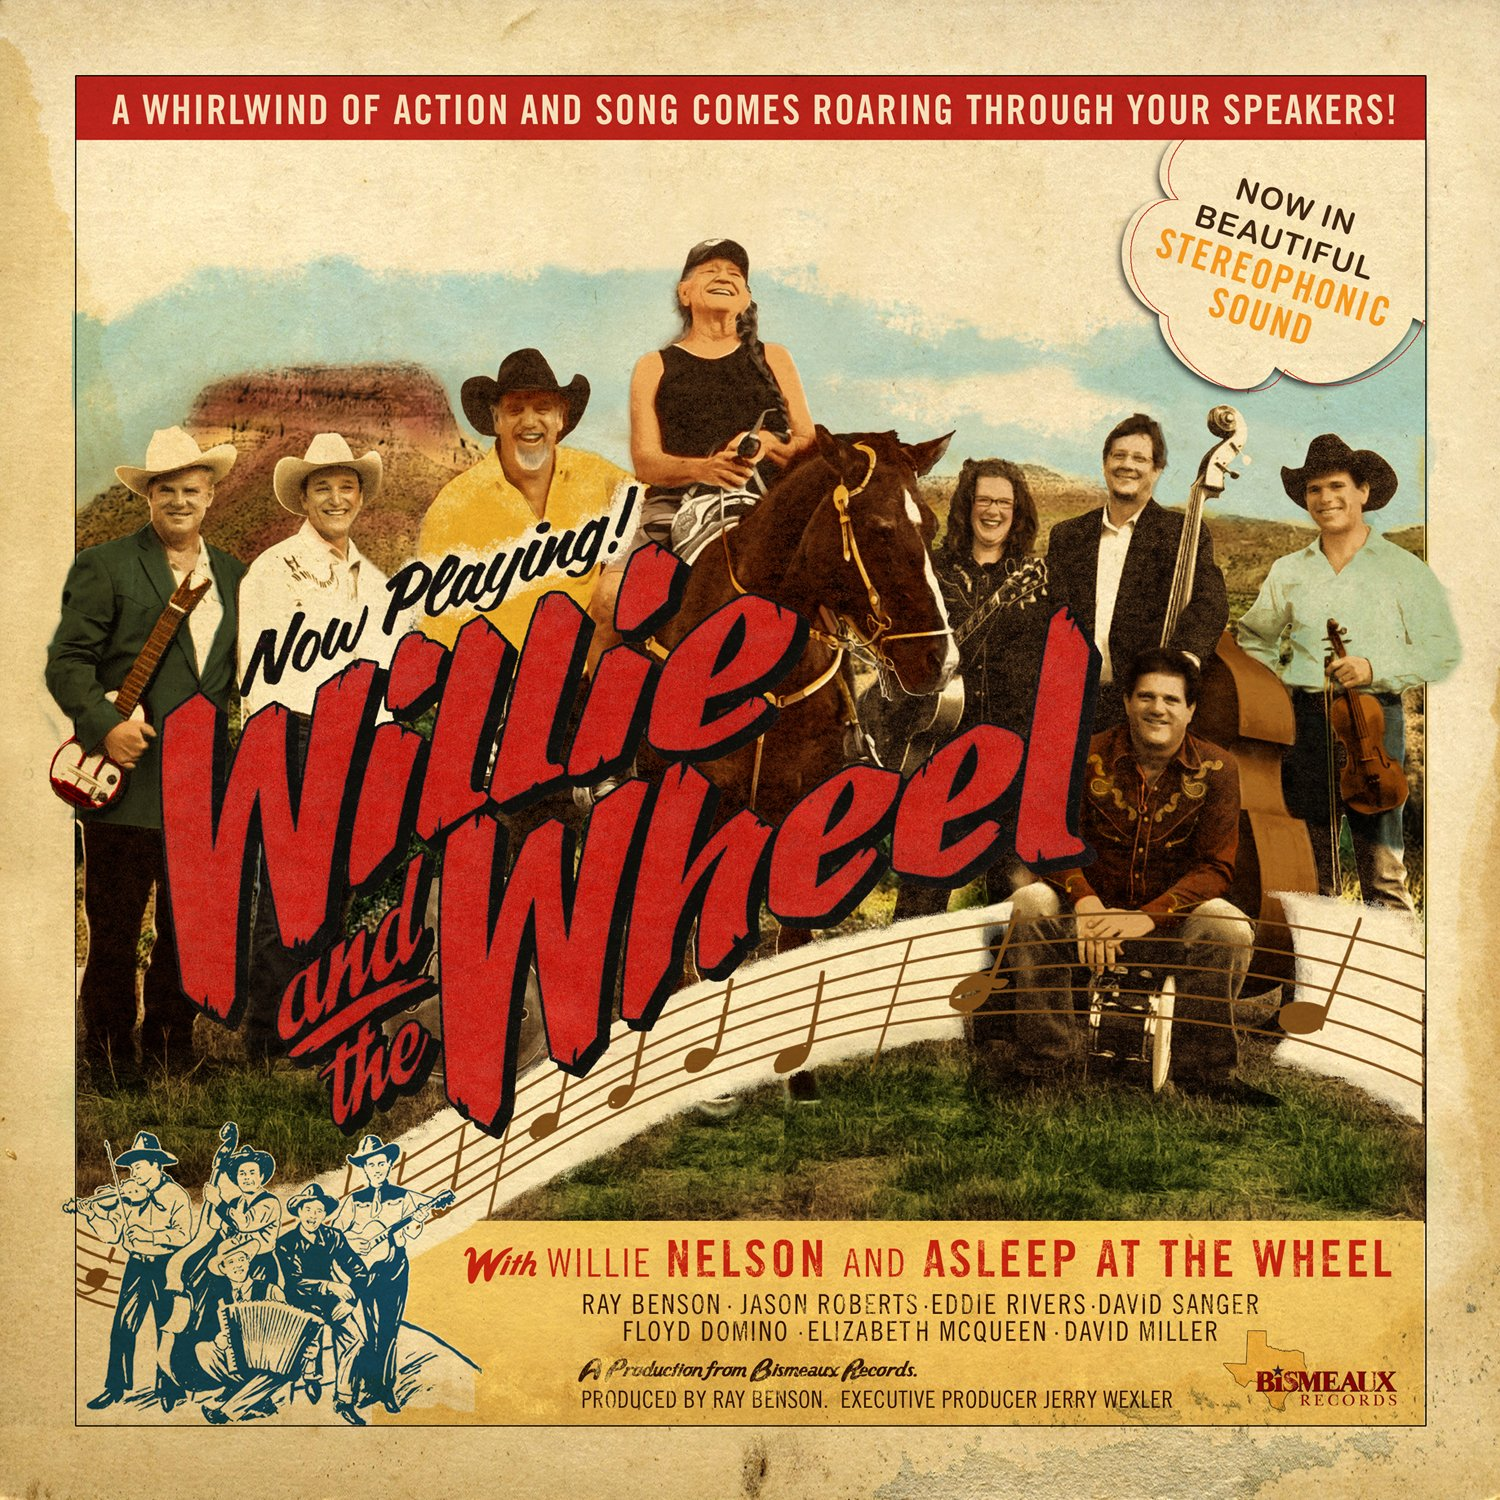 Willie Nelson/Asleep at the Wheel : Willie Nelson, Asleep at the Wh: Amazon.es: Música